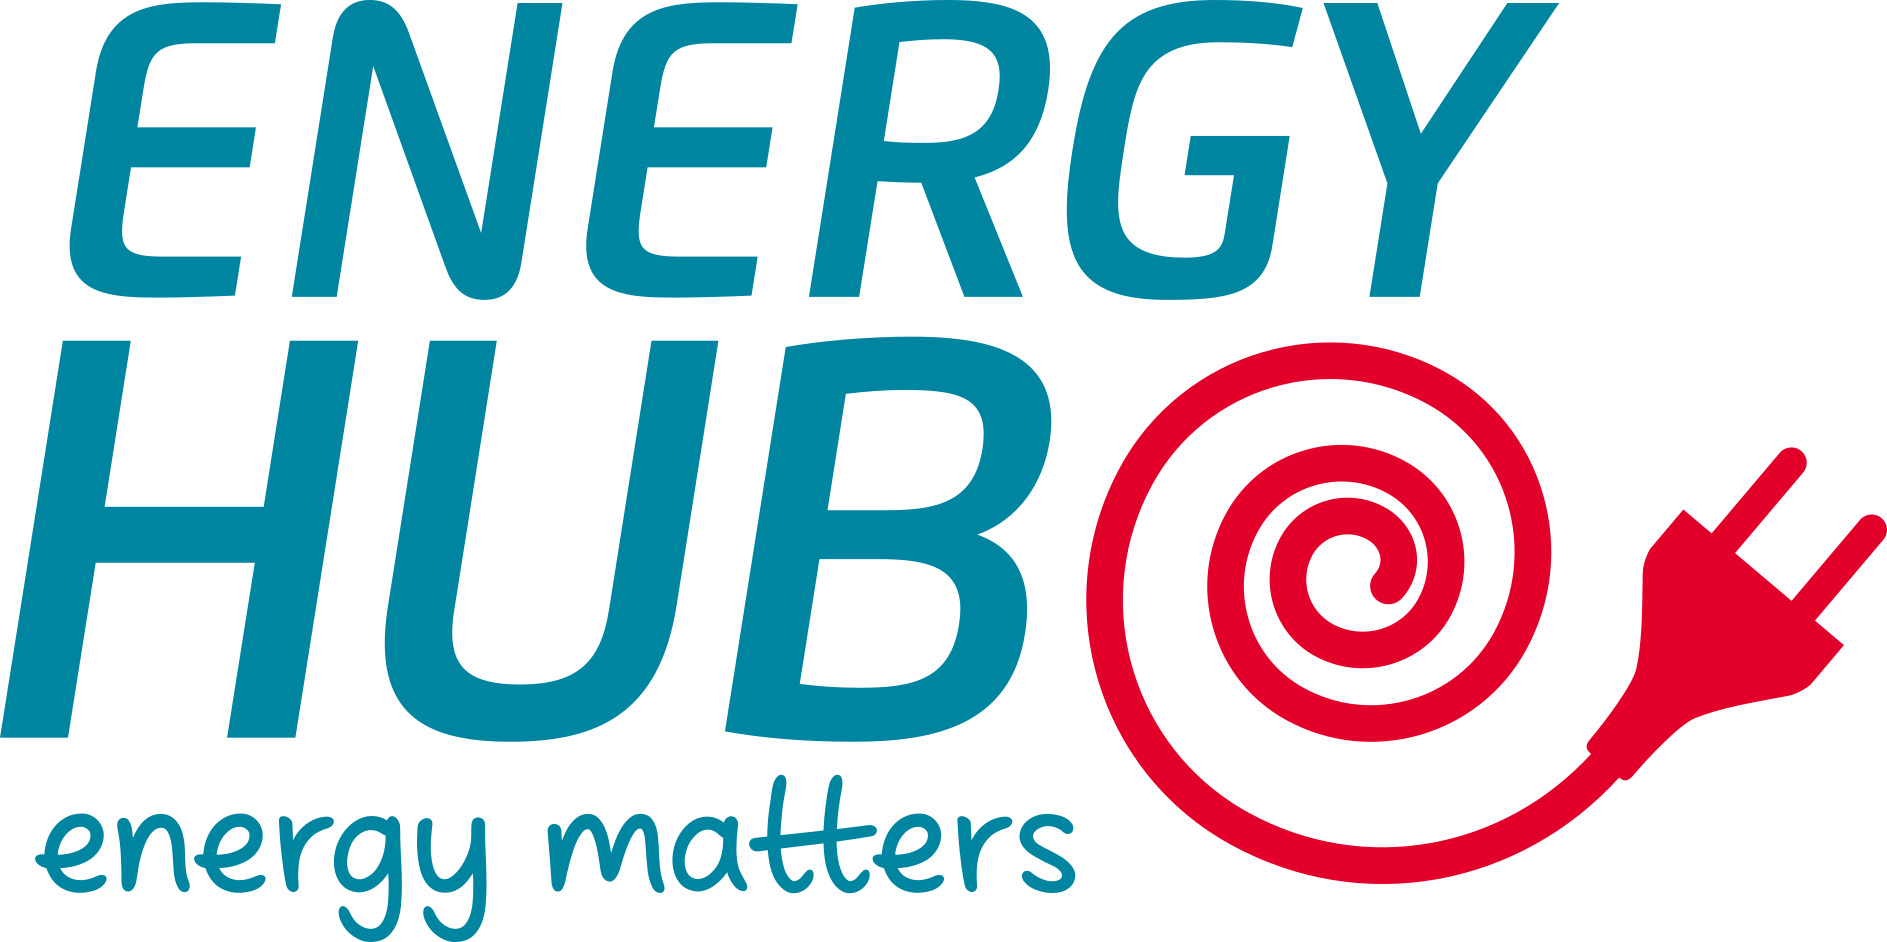 ENERGY-HUB s.r.o. (Czech Republic)